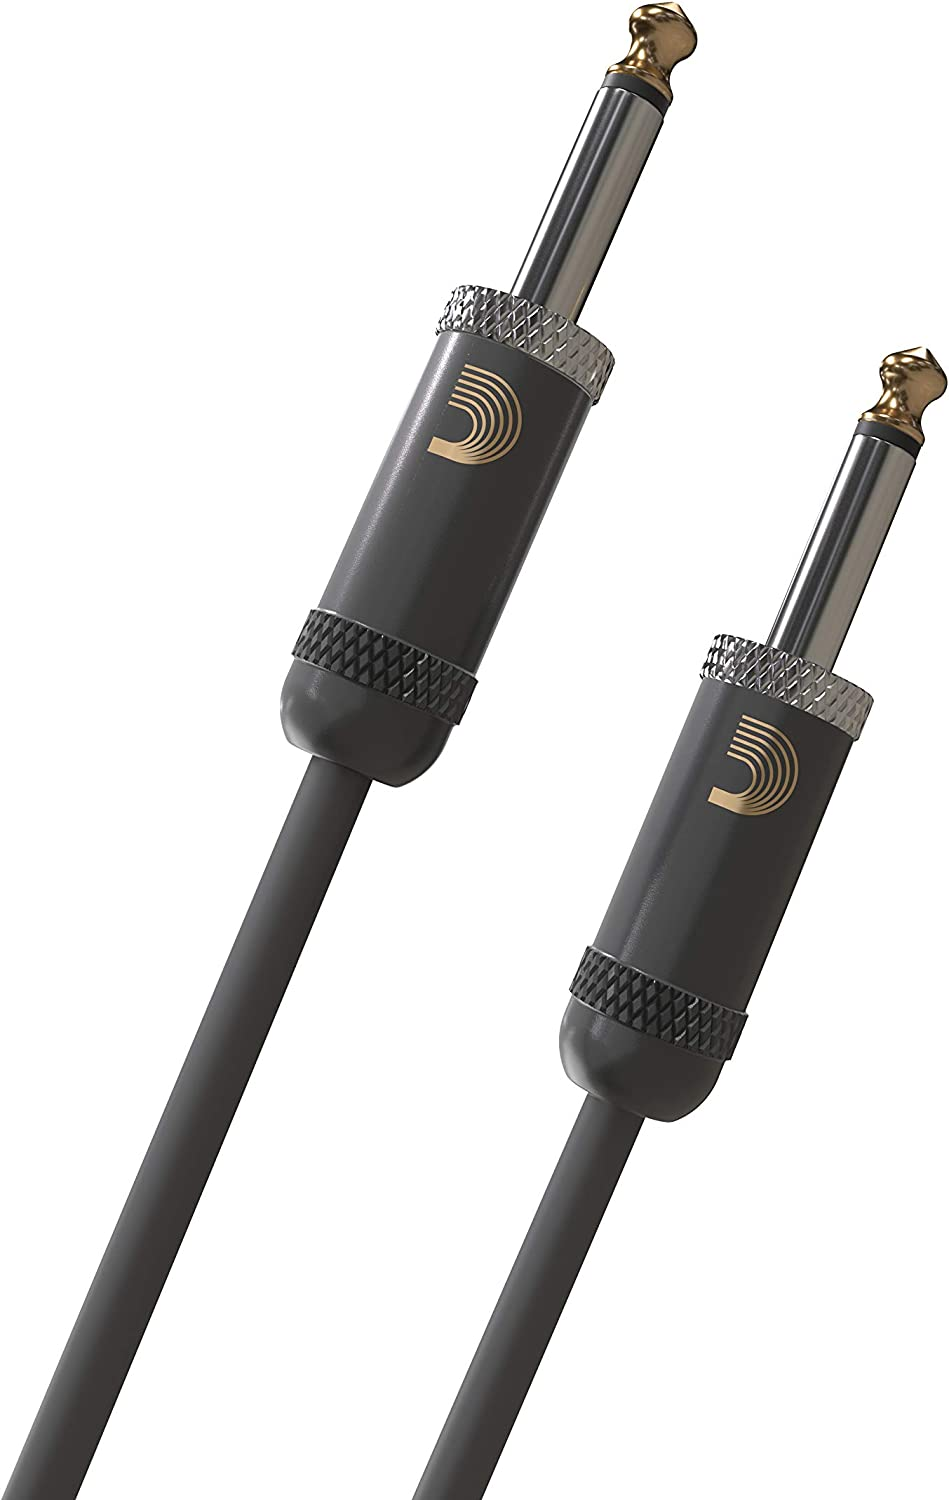 D'Addario American Stage Instrument Cable